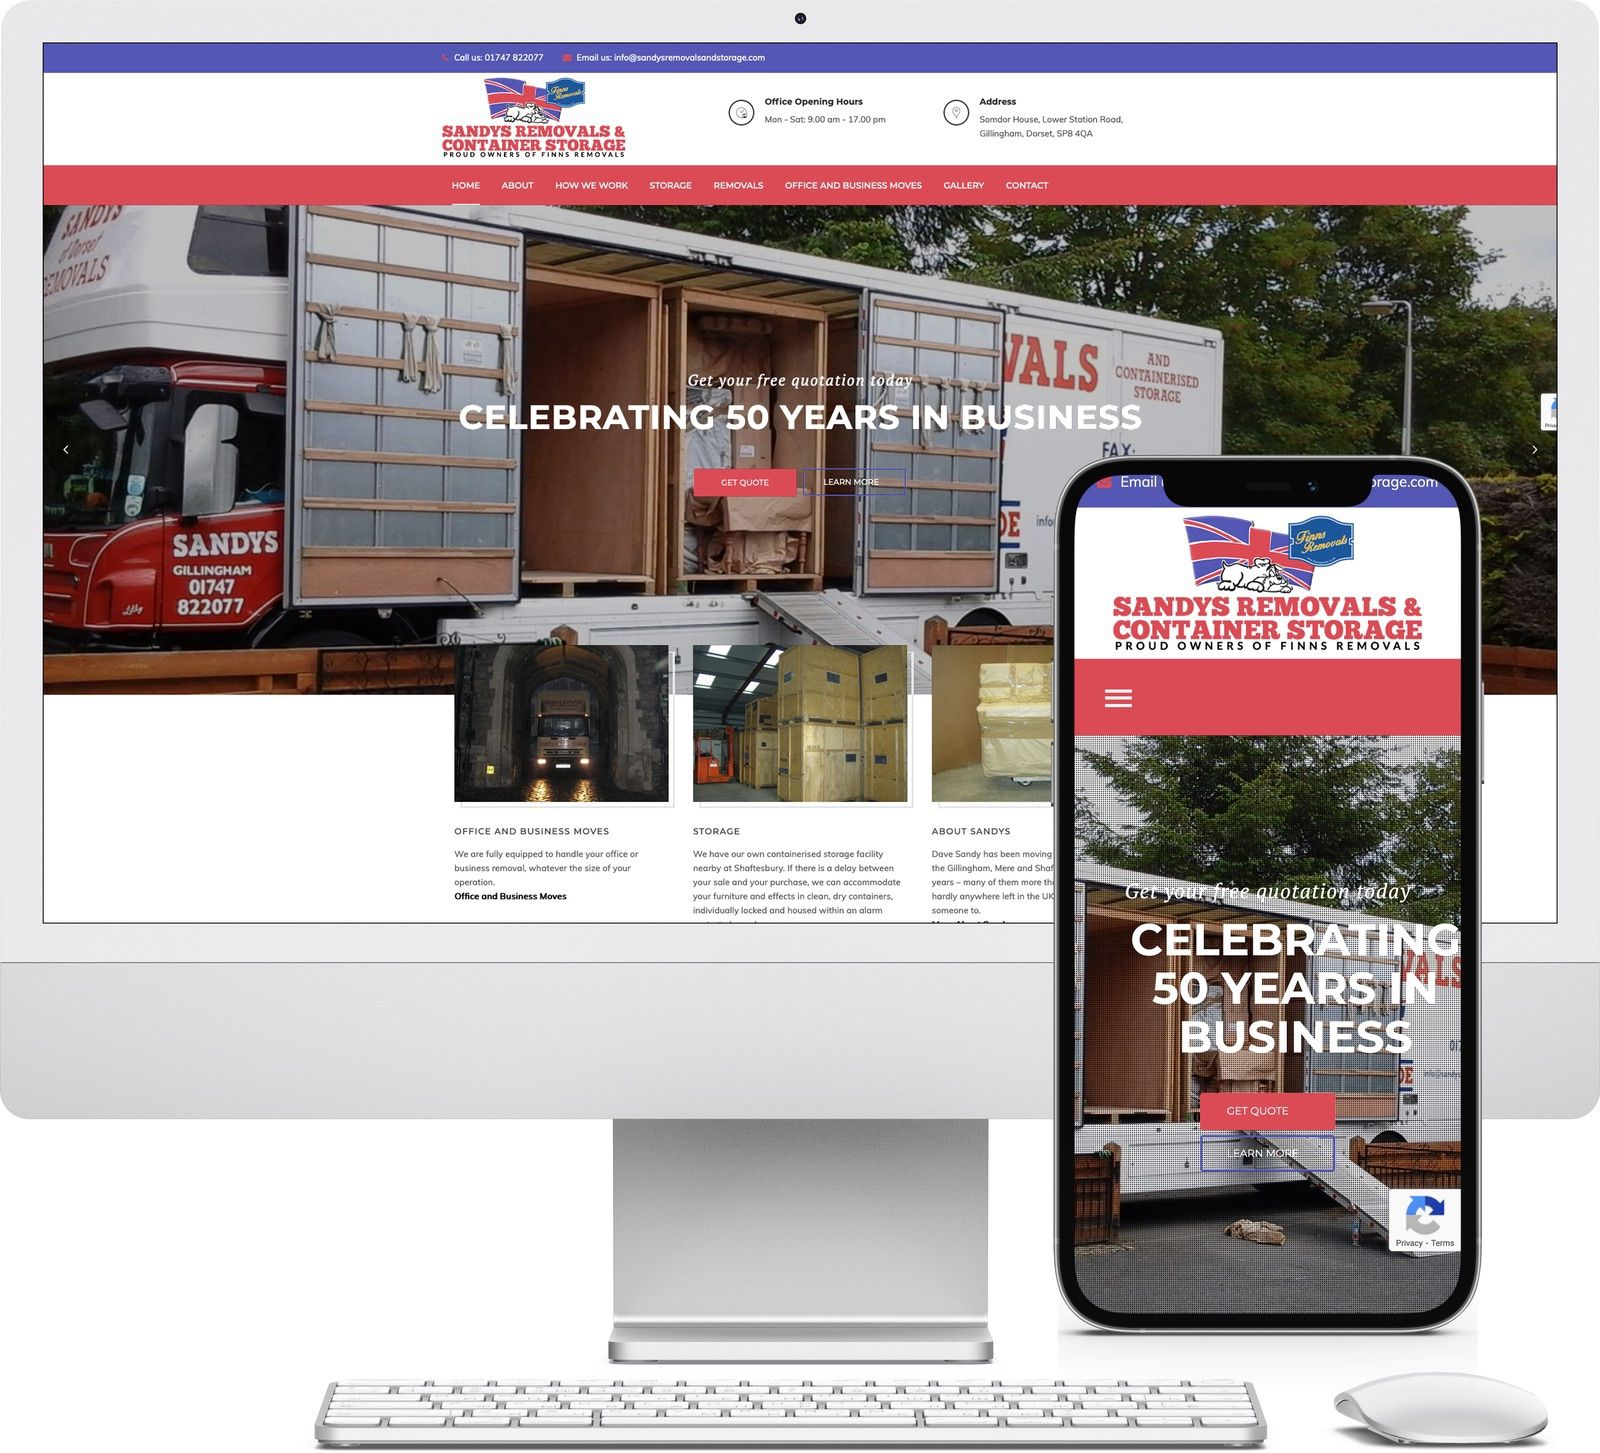 Sandys Removals and Container Storage iMac and iPhone mockup image - Riotspace Creative